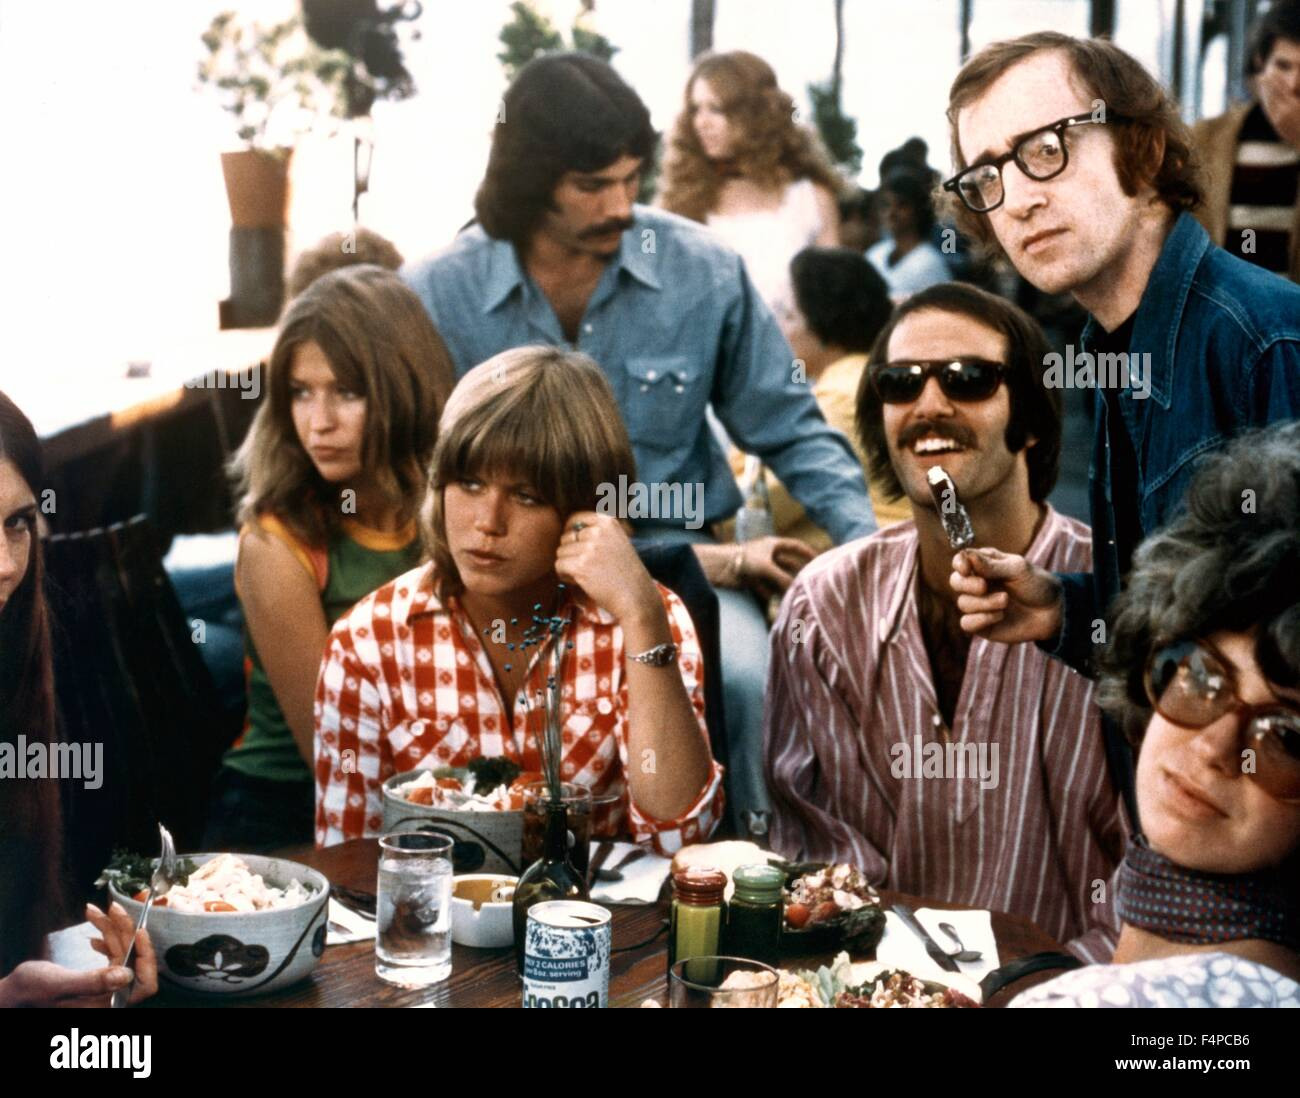 Woody Allen / Take The Money And Run 1969 directed by Woody Allen - Stock Image